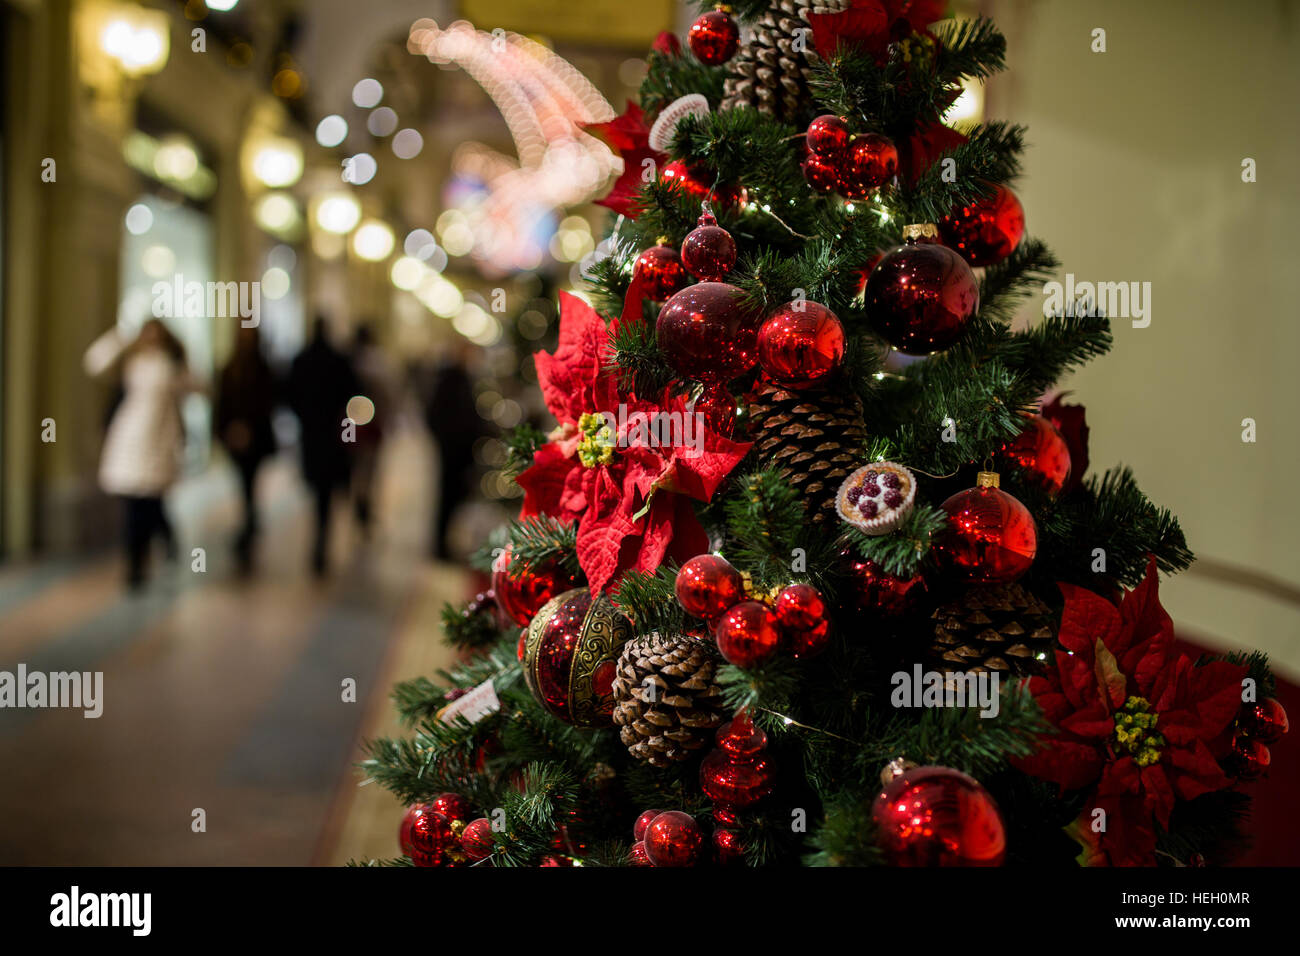 Shopping Center With Christmas Tree Decorated Cones Flowers And Red Balls